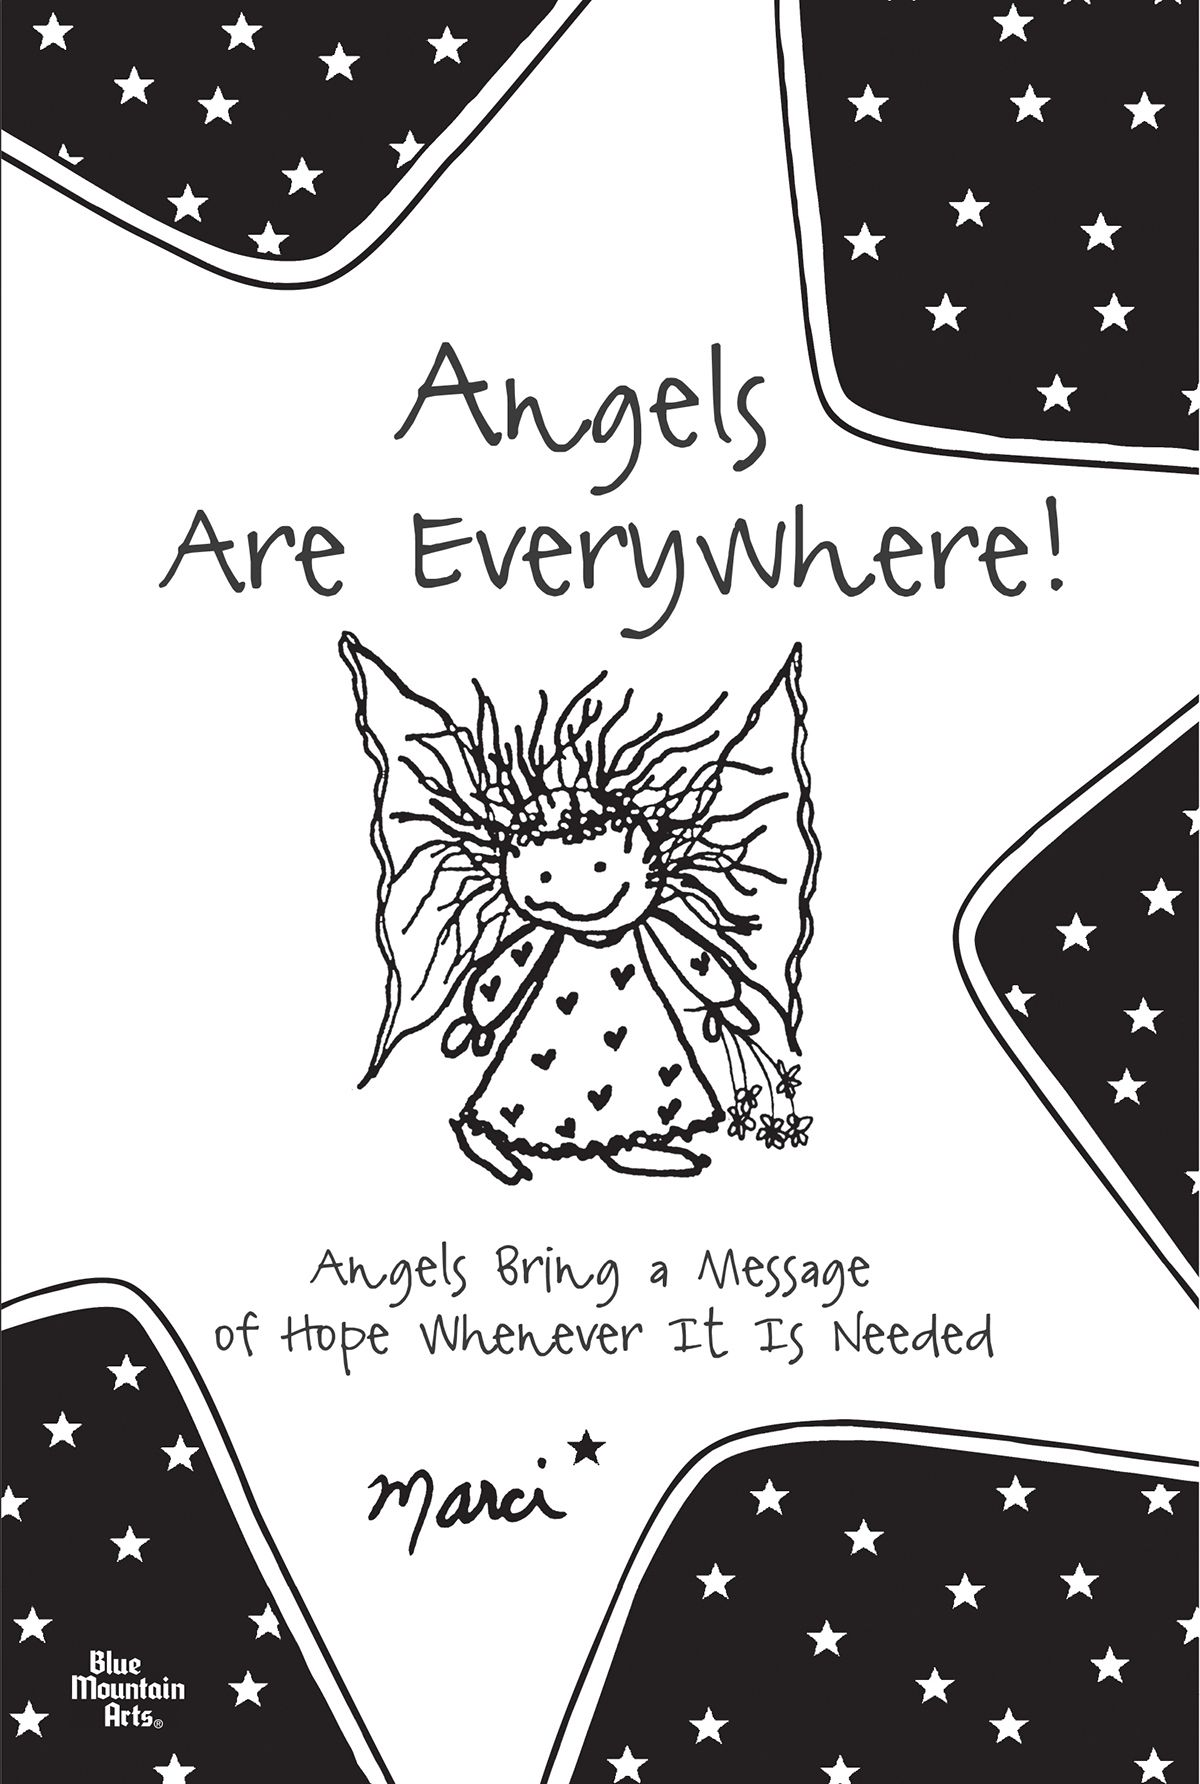 Angels are everywhere angels bring a message of hope